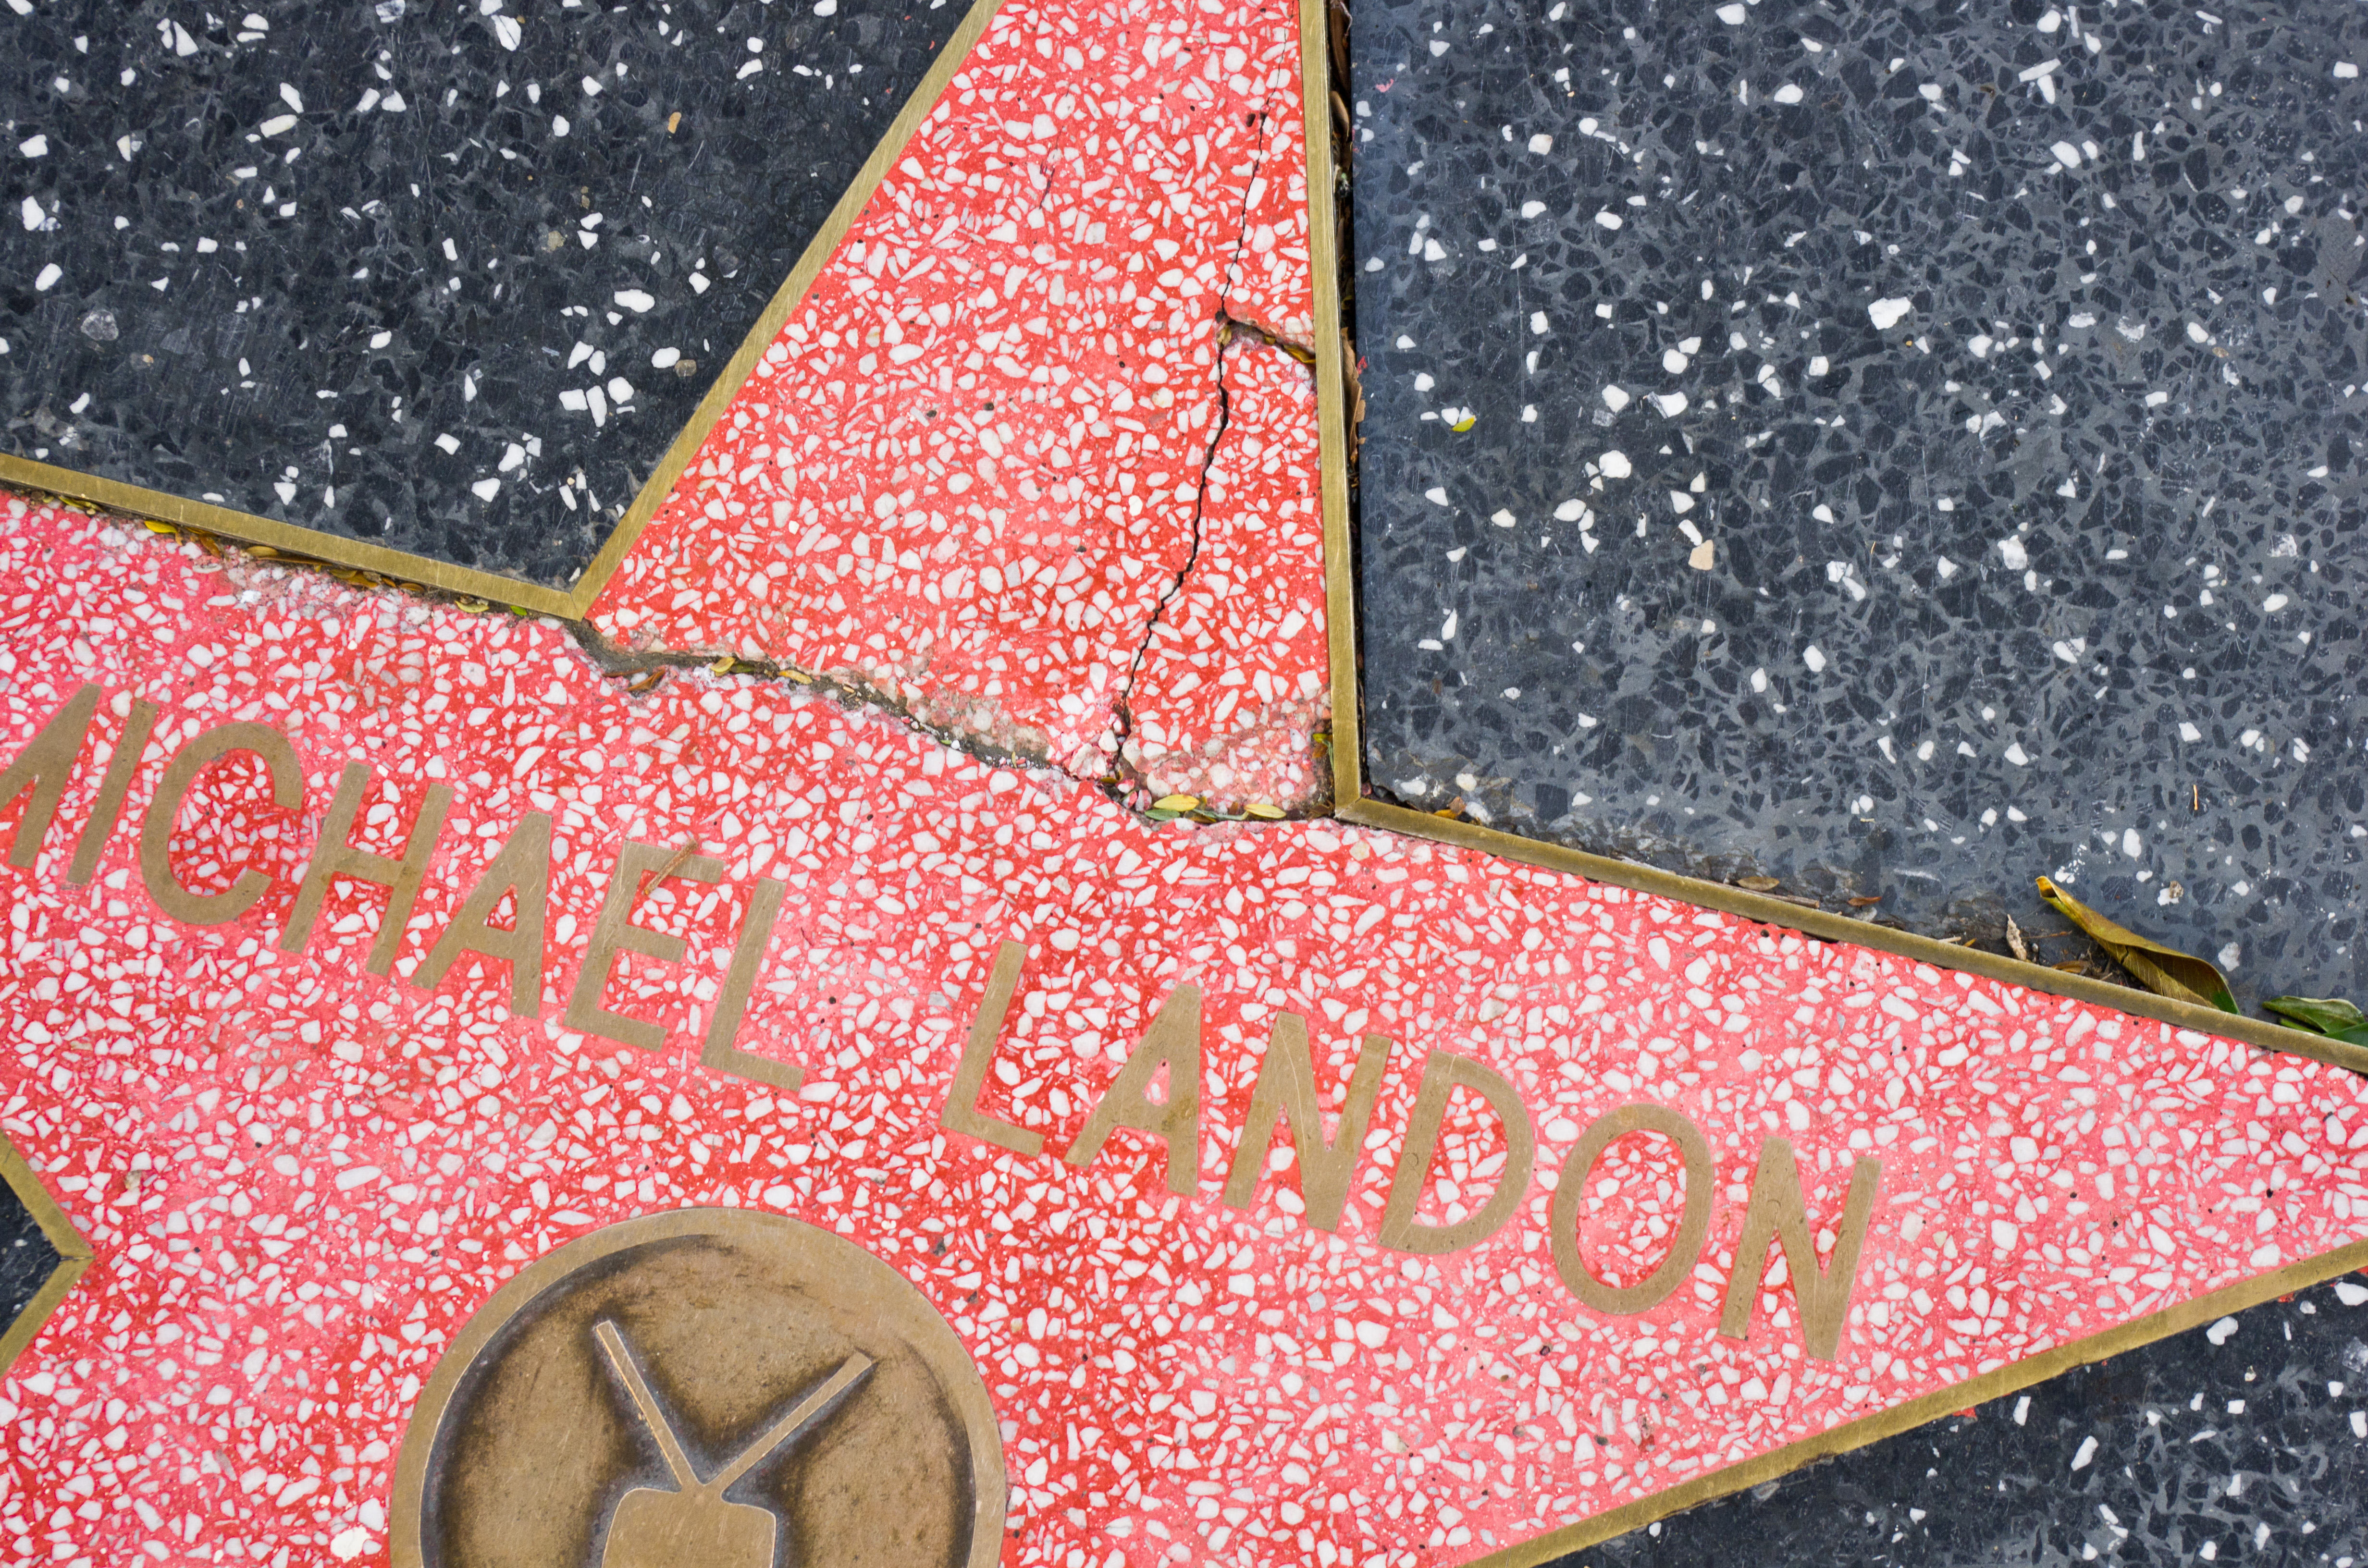 File:Walk of Fame 4.jpg - Wikimedia Commons